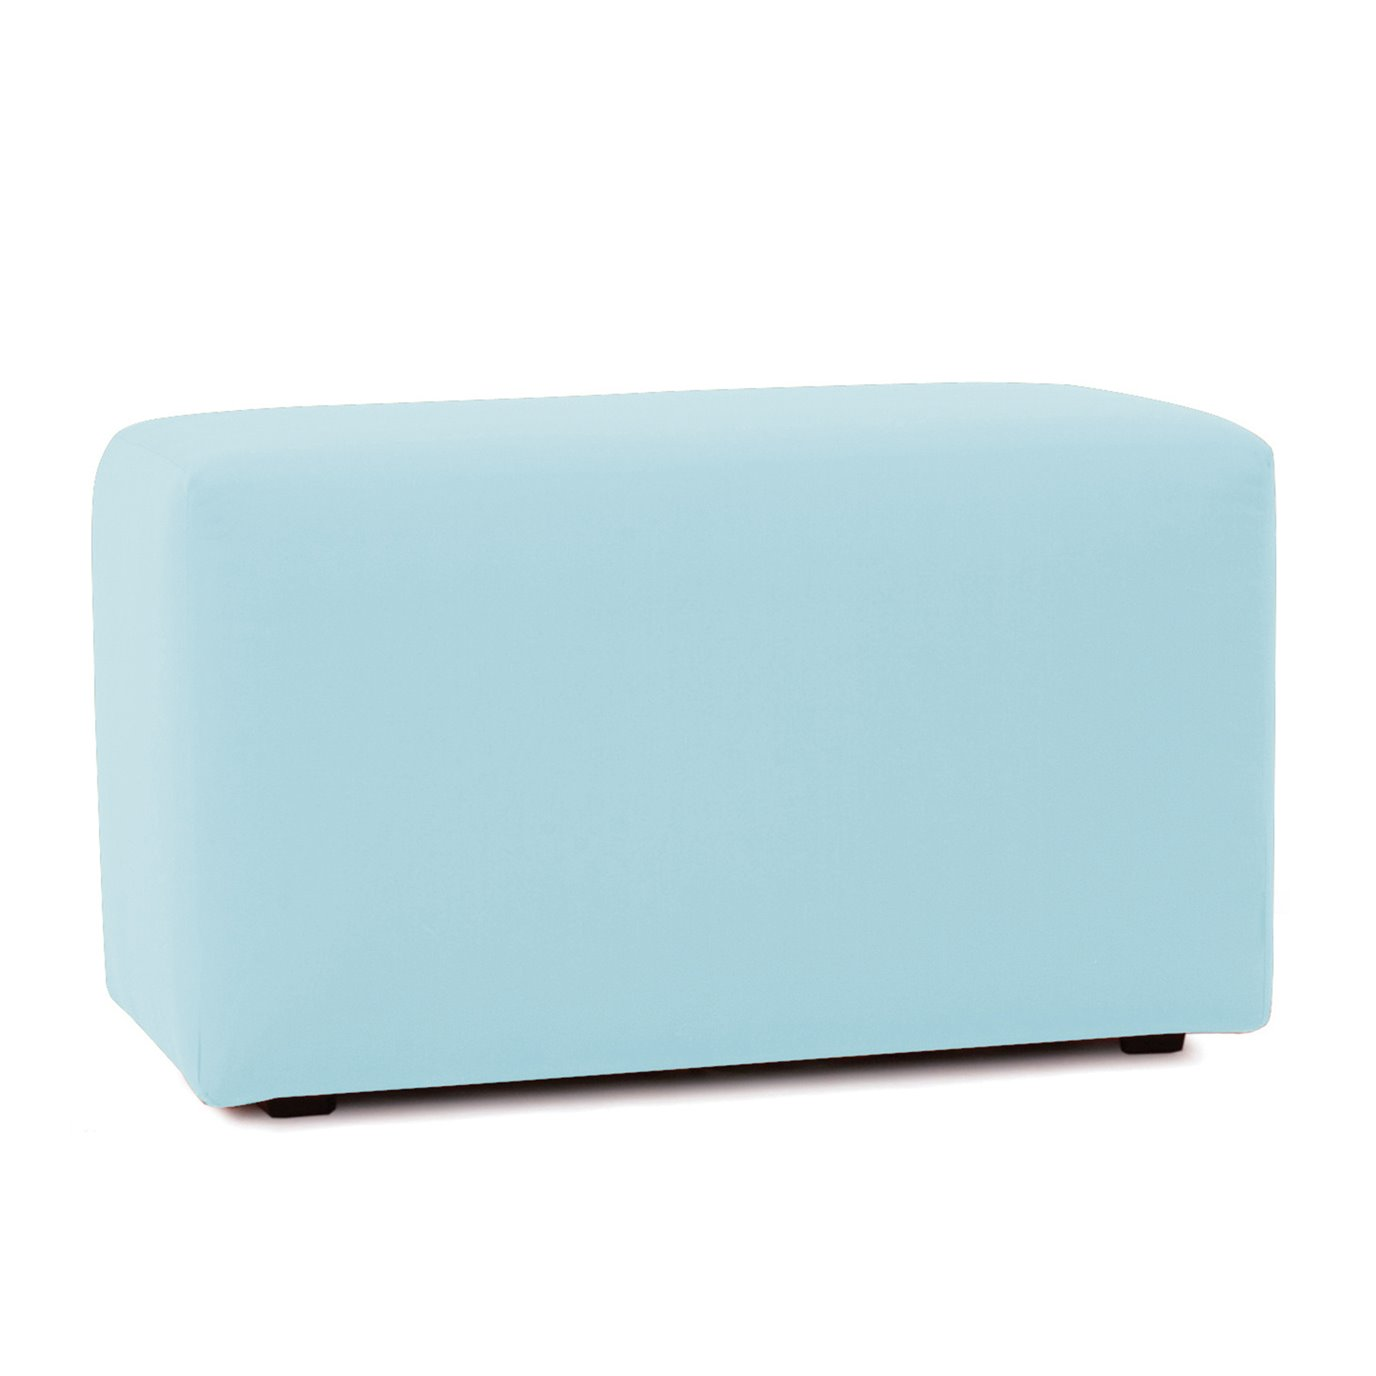 Howard Elliott Universal Bench Cover Sunbrella Outdoor Seascape Breeze - Cover Only, Base Not Included